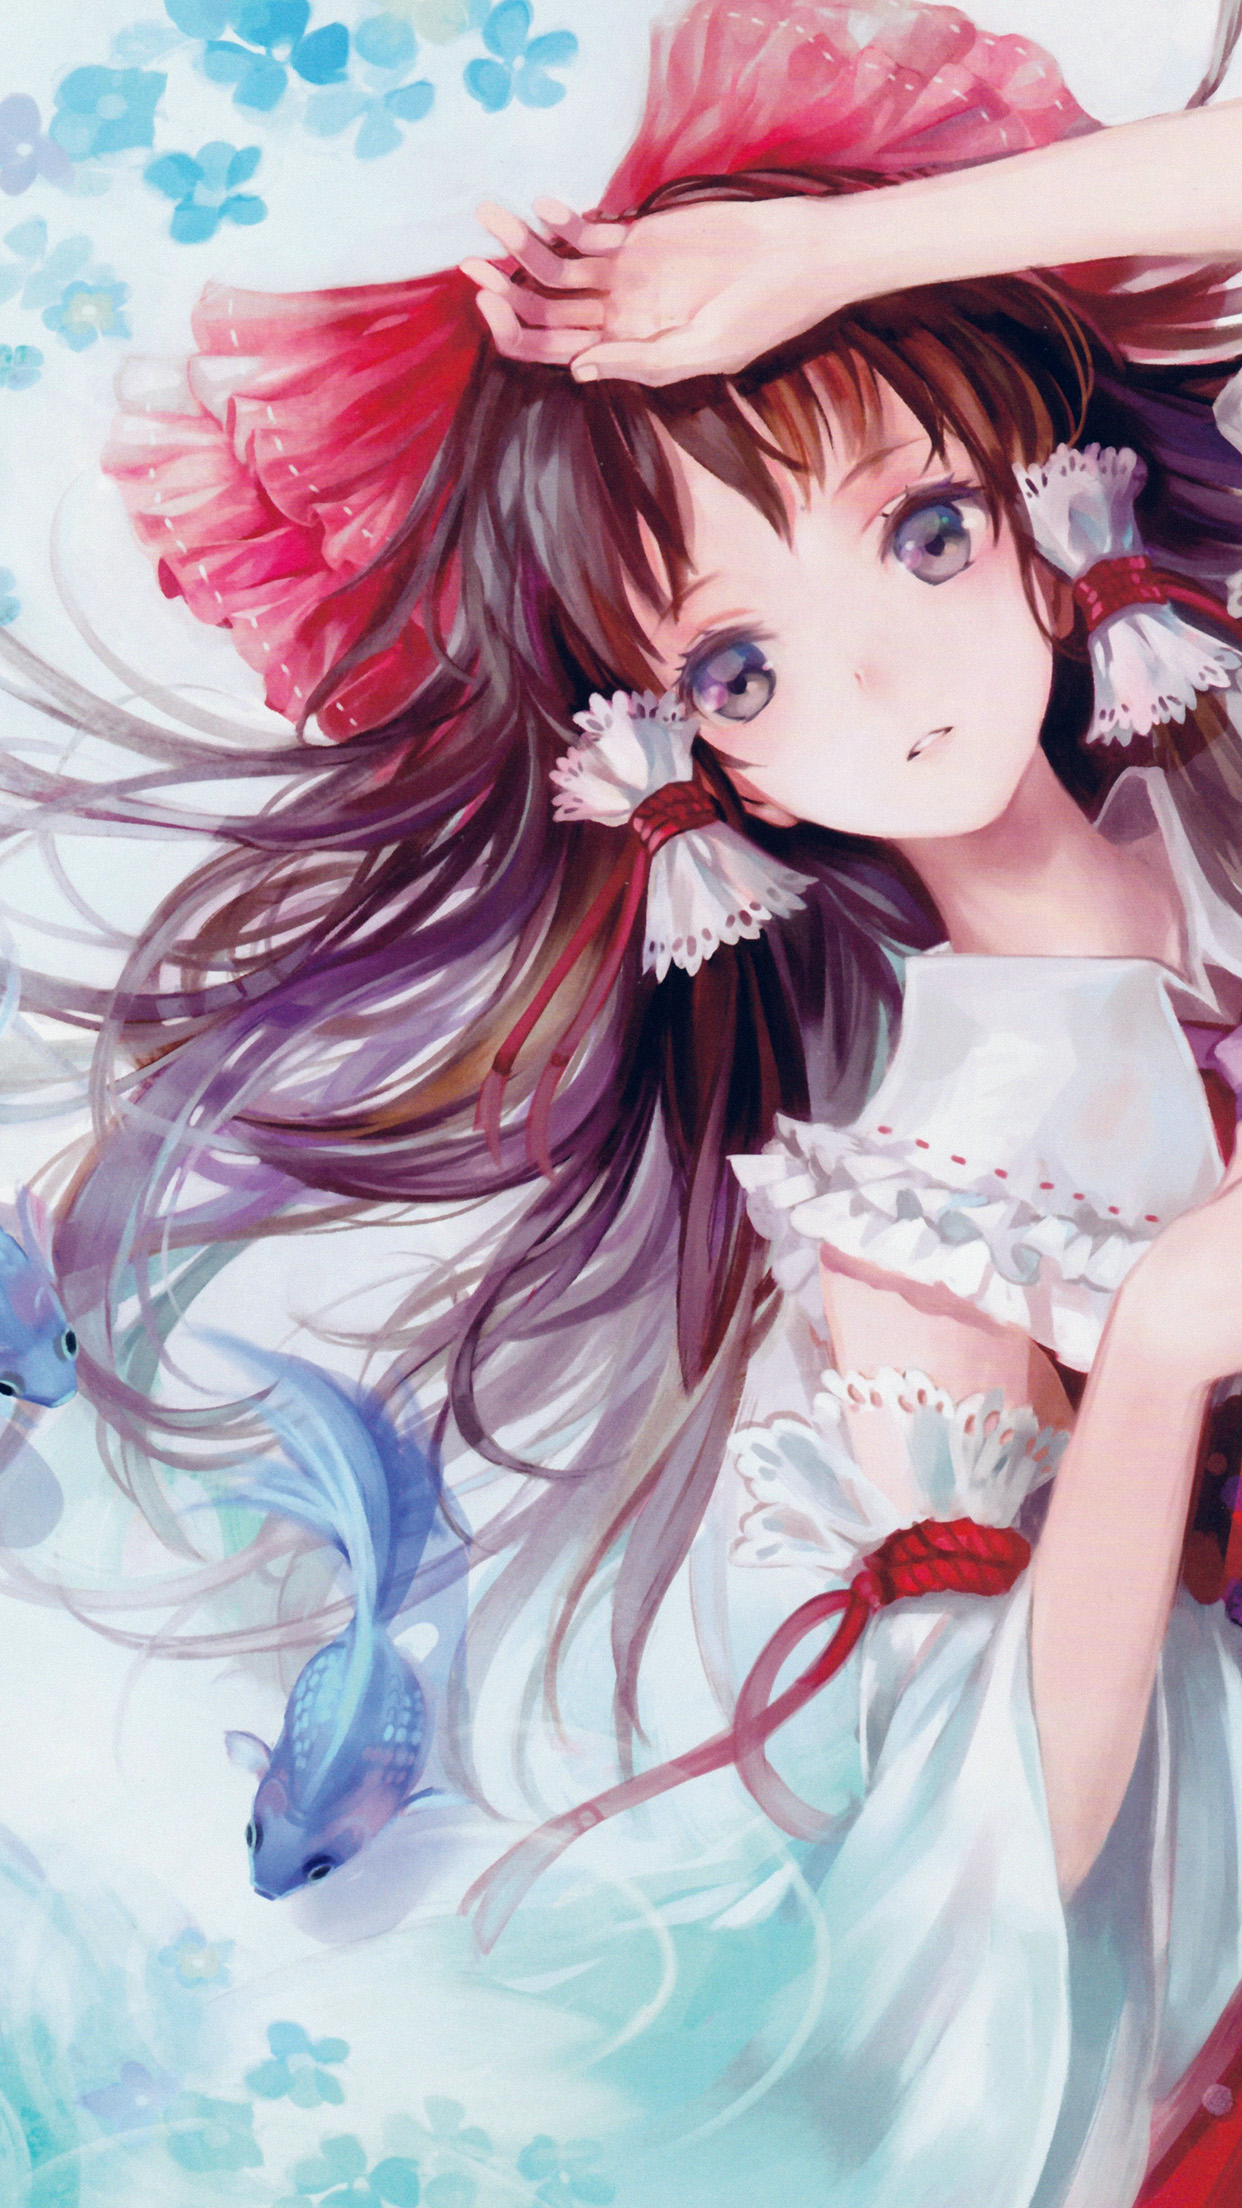 Cute Girly Wallpapers For Iphone 6 Plus Papers Co Iphone Wallpaper Ao18 Anime Art Paint Girl Cute